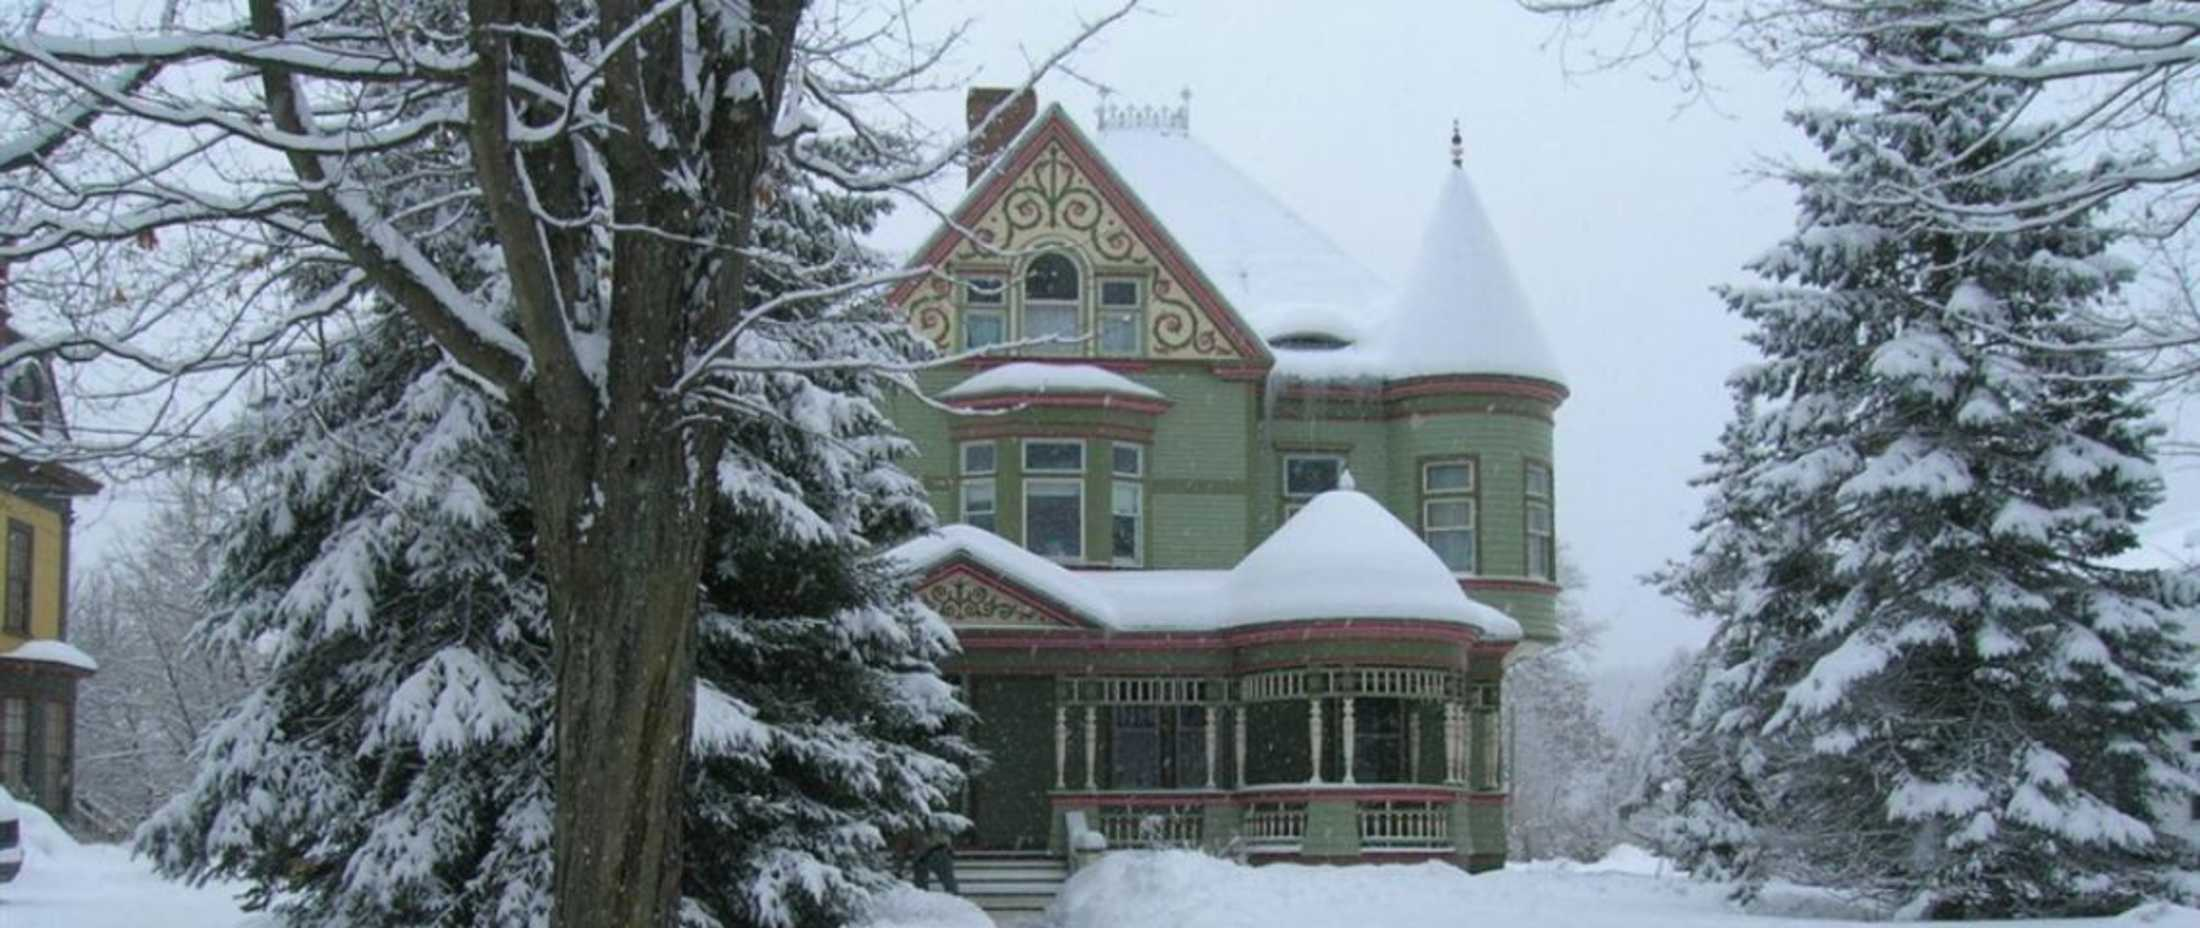 east saint johnsbury buddhist single men Milarepa center is a rural tibetan buddhist retreat center our center operates under the spiritual direction of lama zopa rinpoche and our affiliate organization, the foundation for the.